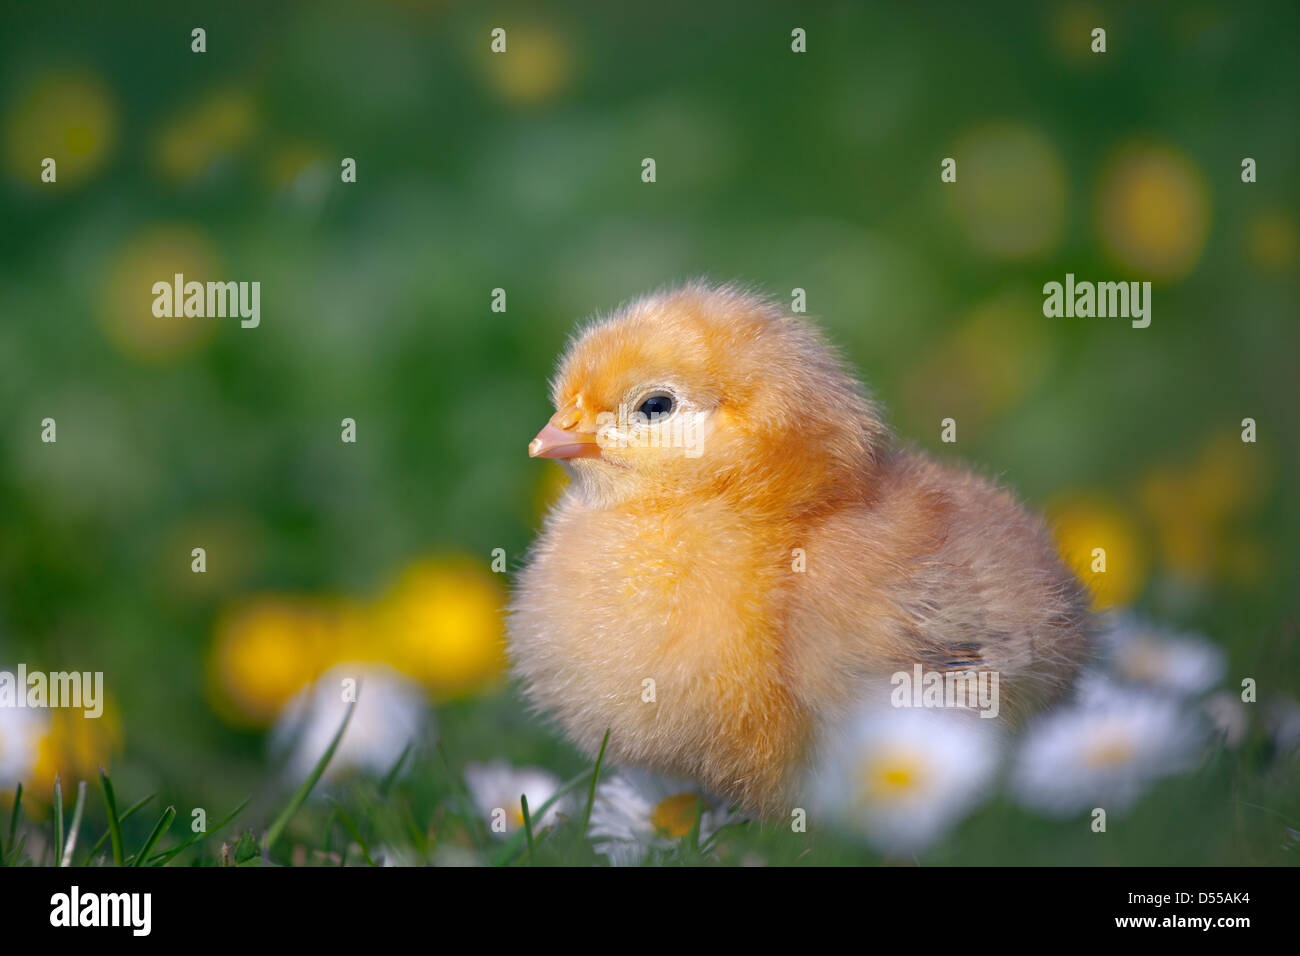 Day old chicks newly hatched in spring in daises - Stock Image